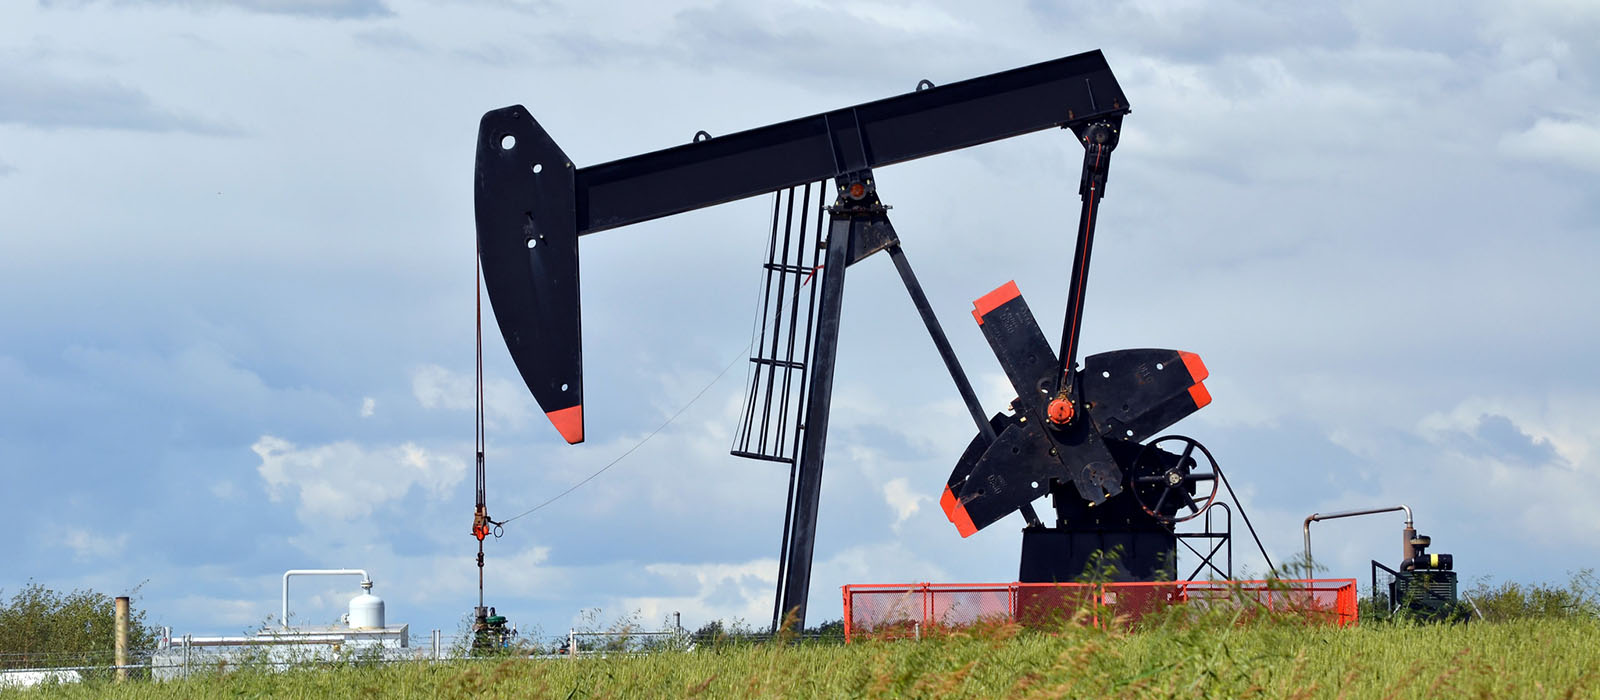 Oil pumpjack against a blue sky